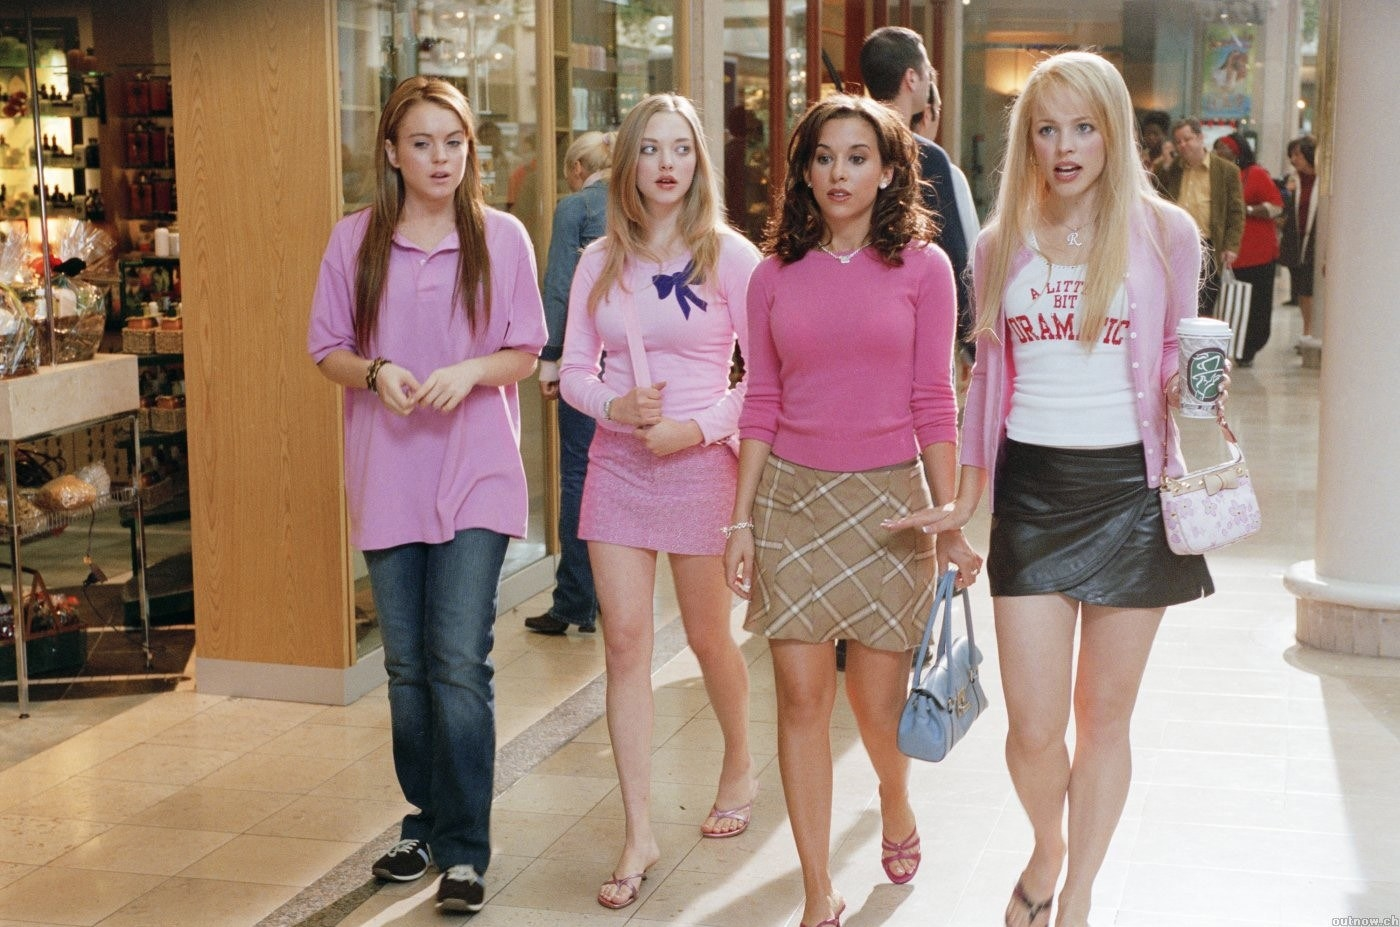 Cady wears pink so she can hang out with the Plastics